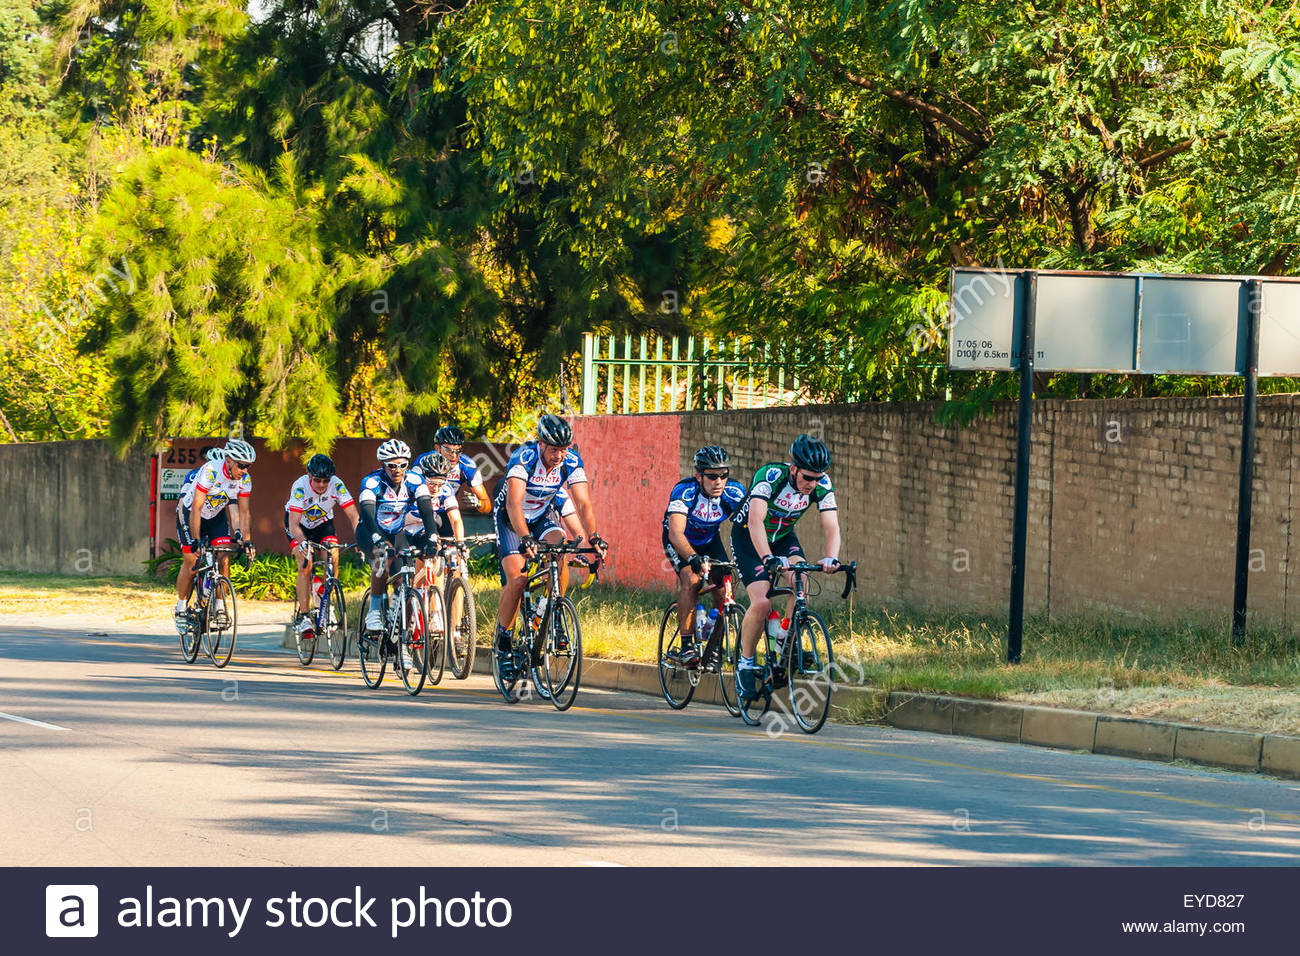 Bicyclists, Johannesburg, South Africa. - Stock Image